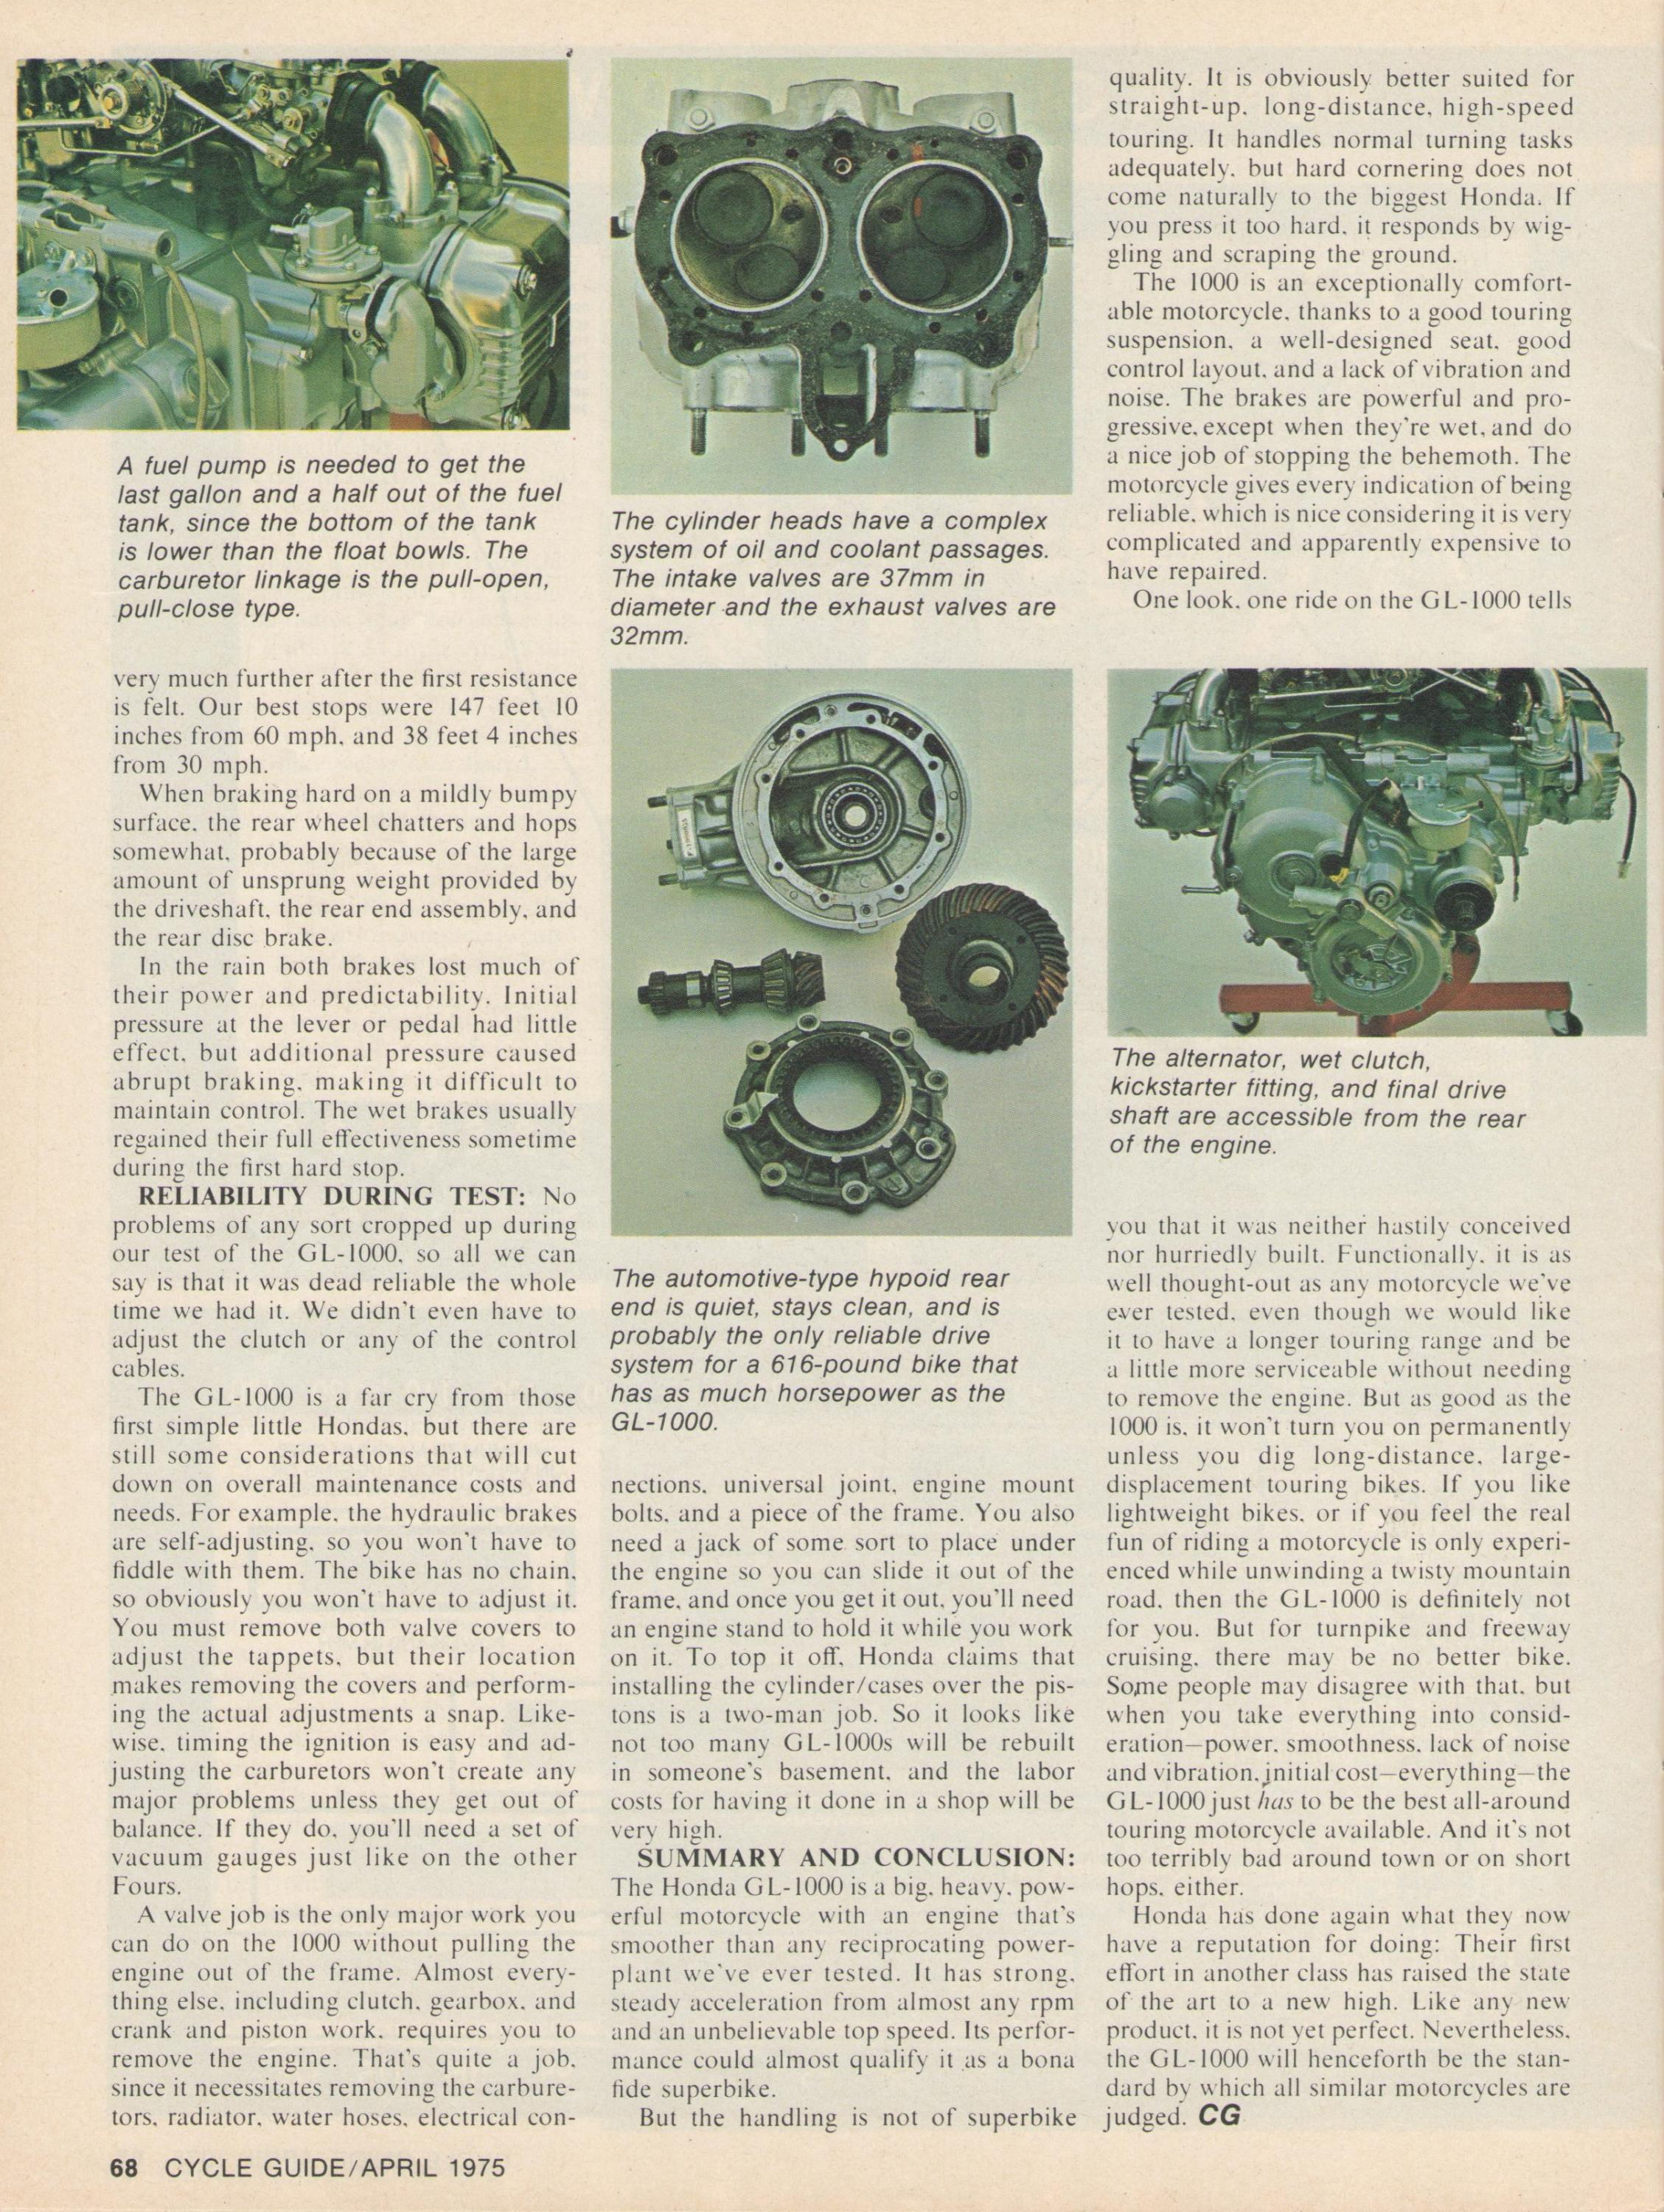 1975 GL-1000 test report Cycle Guide Magazine April 1975-1975-gl-1000-test-report-p.13.jpg